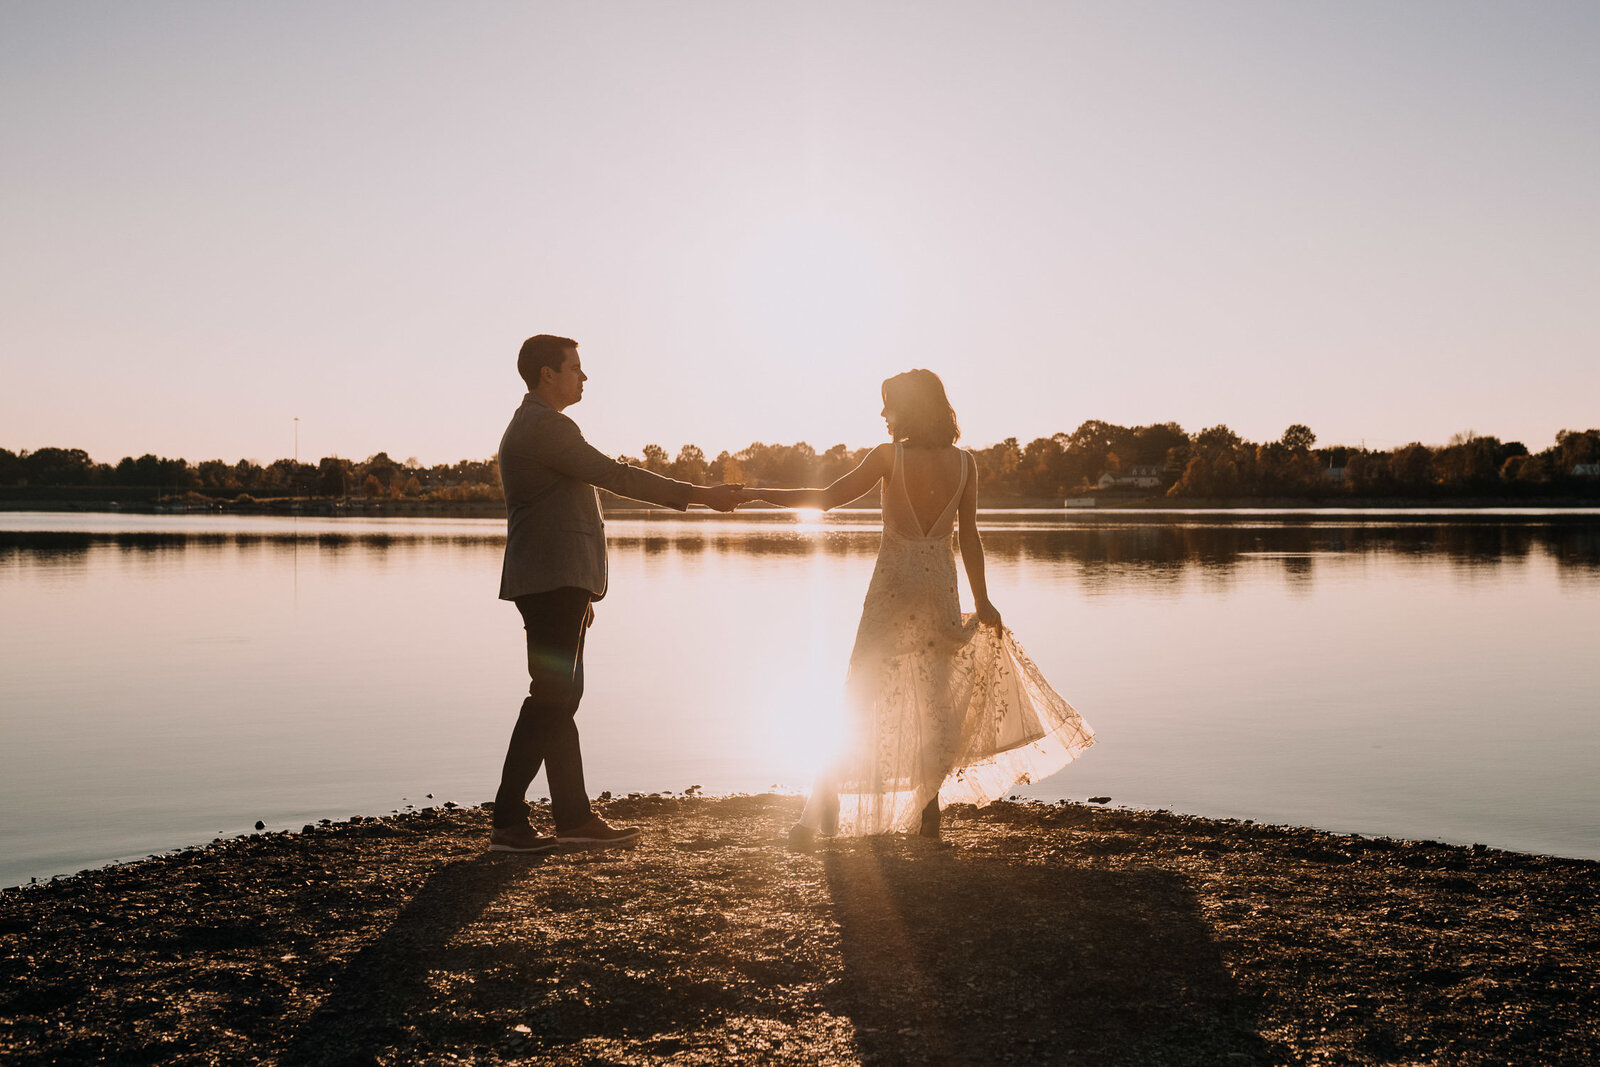 alexis-tyler-hoover-dam-reservoir-fall-columbus-ohio-engagement-photography-9